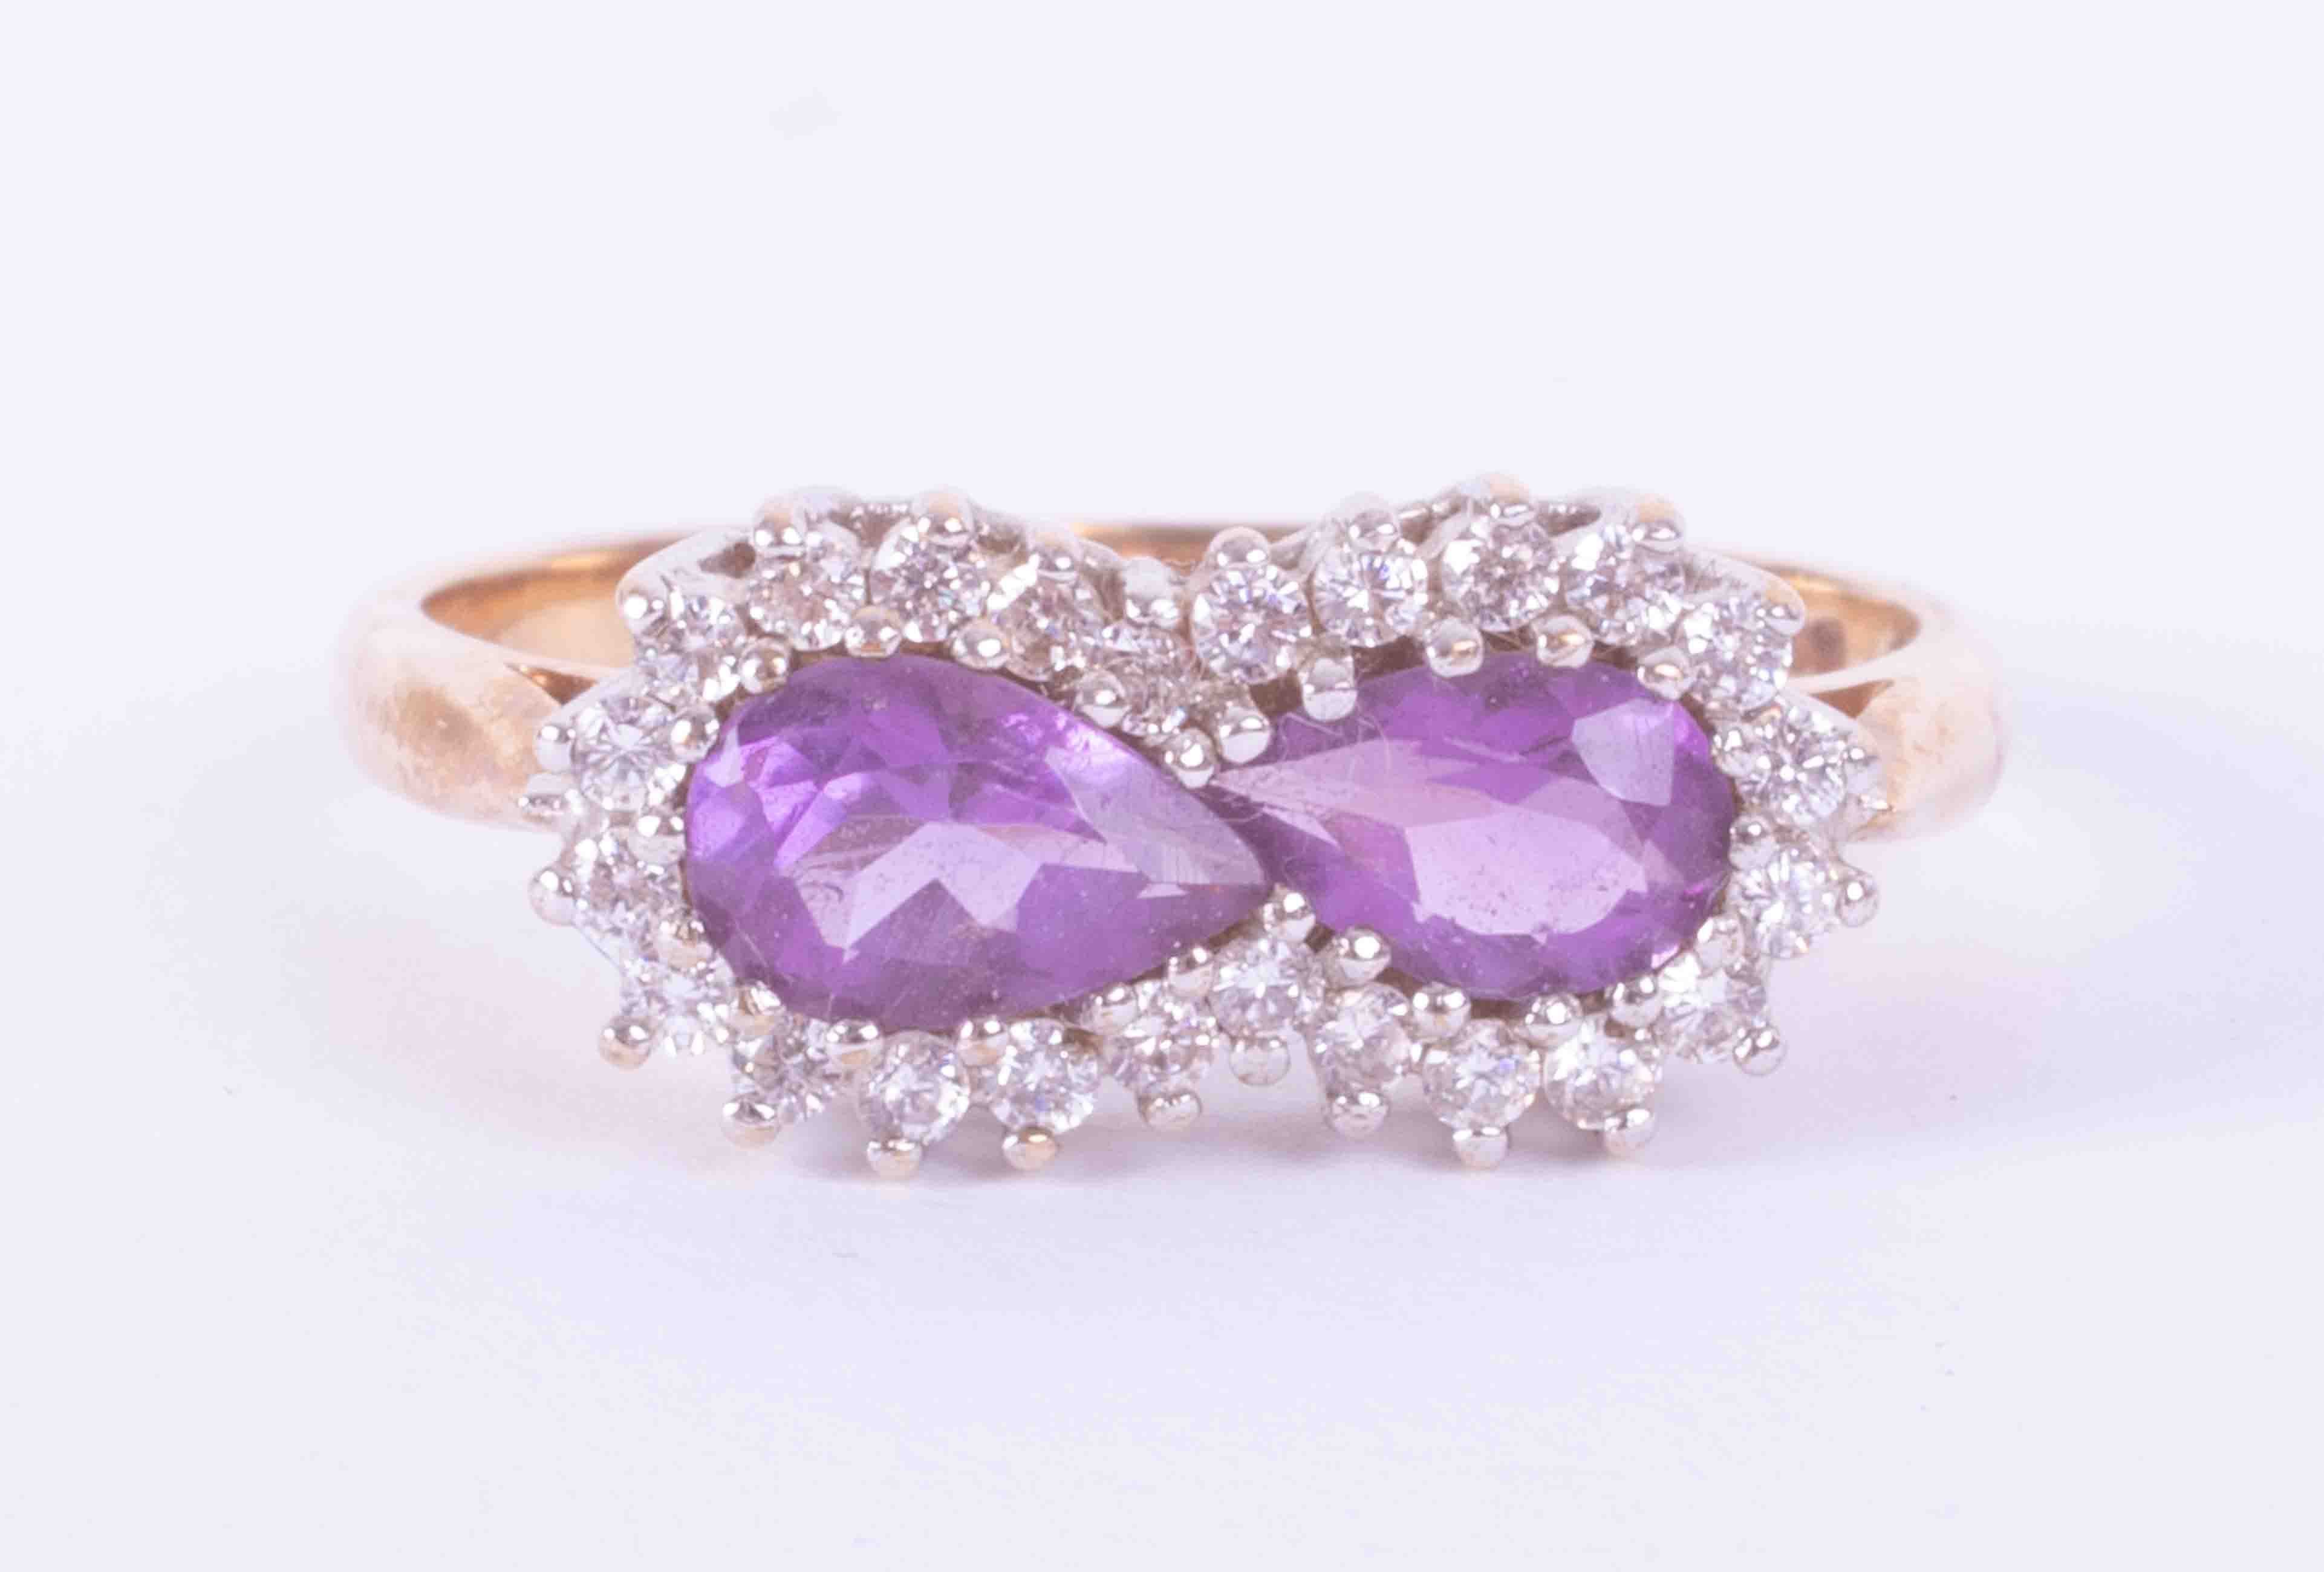 A 9ct yellow & white gold cluster ring set two pear shaped amethysts weight approx. 0.85 carats